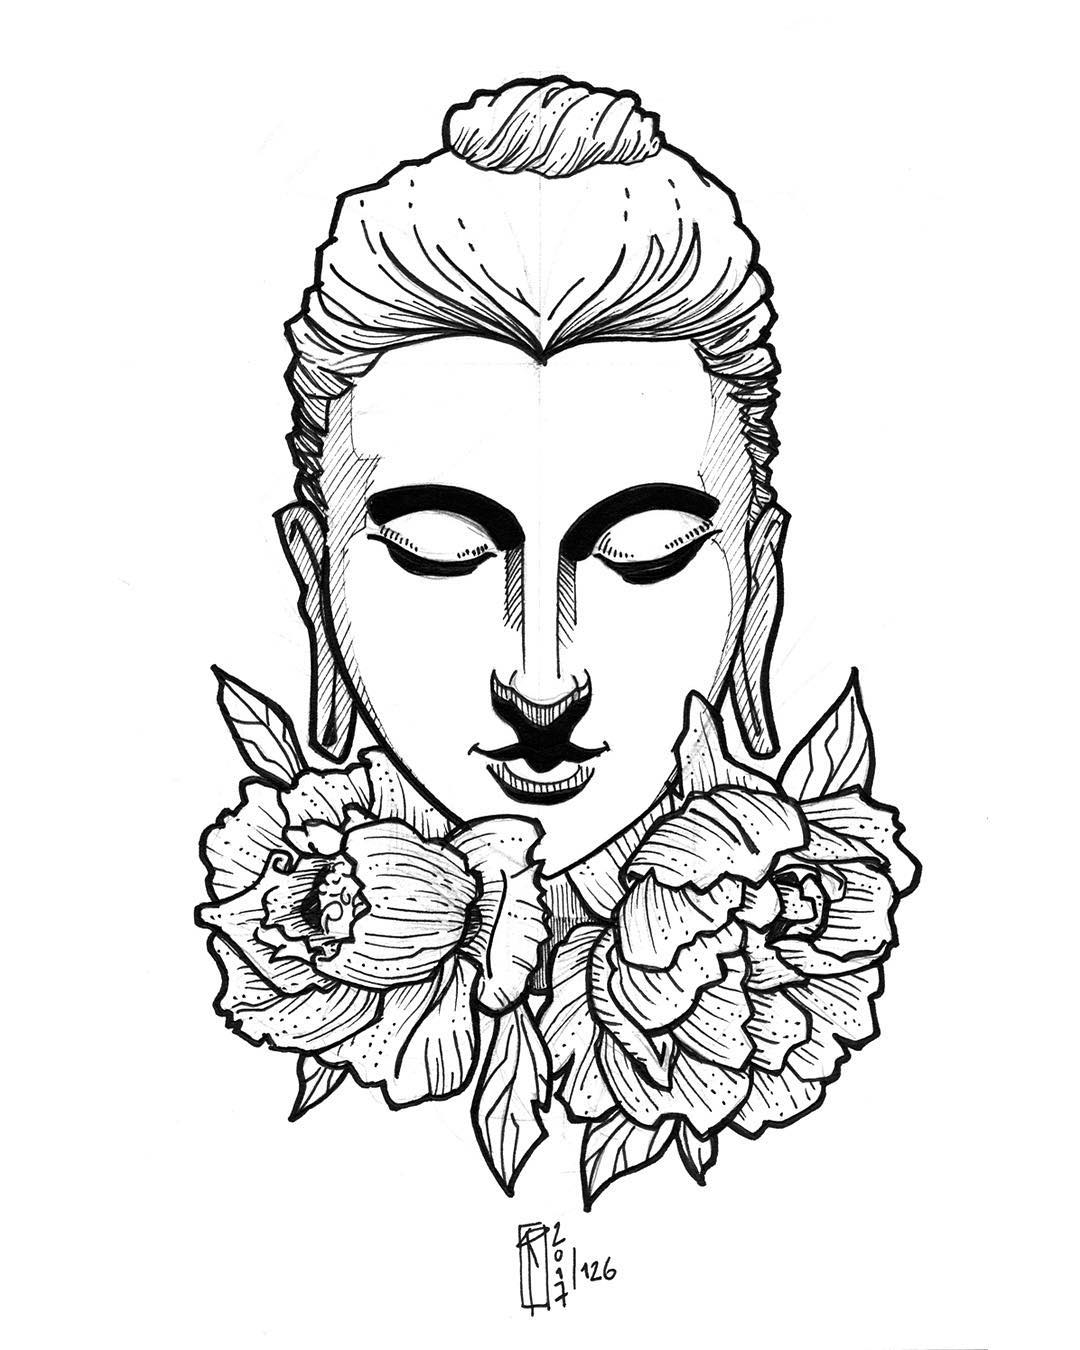 1080x1350 Sketch Buddha Illustration Art On Instagram